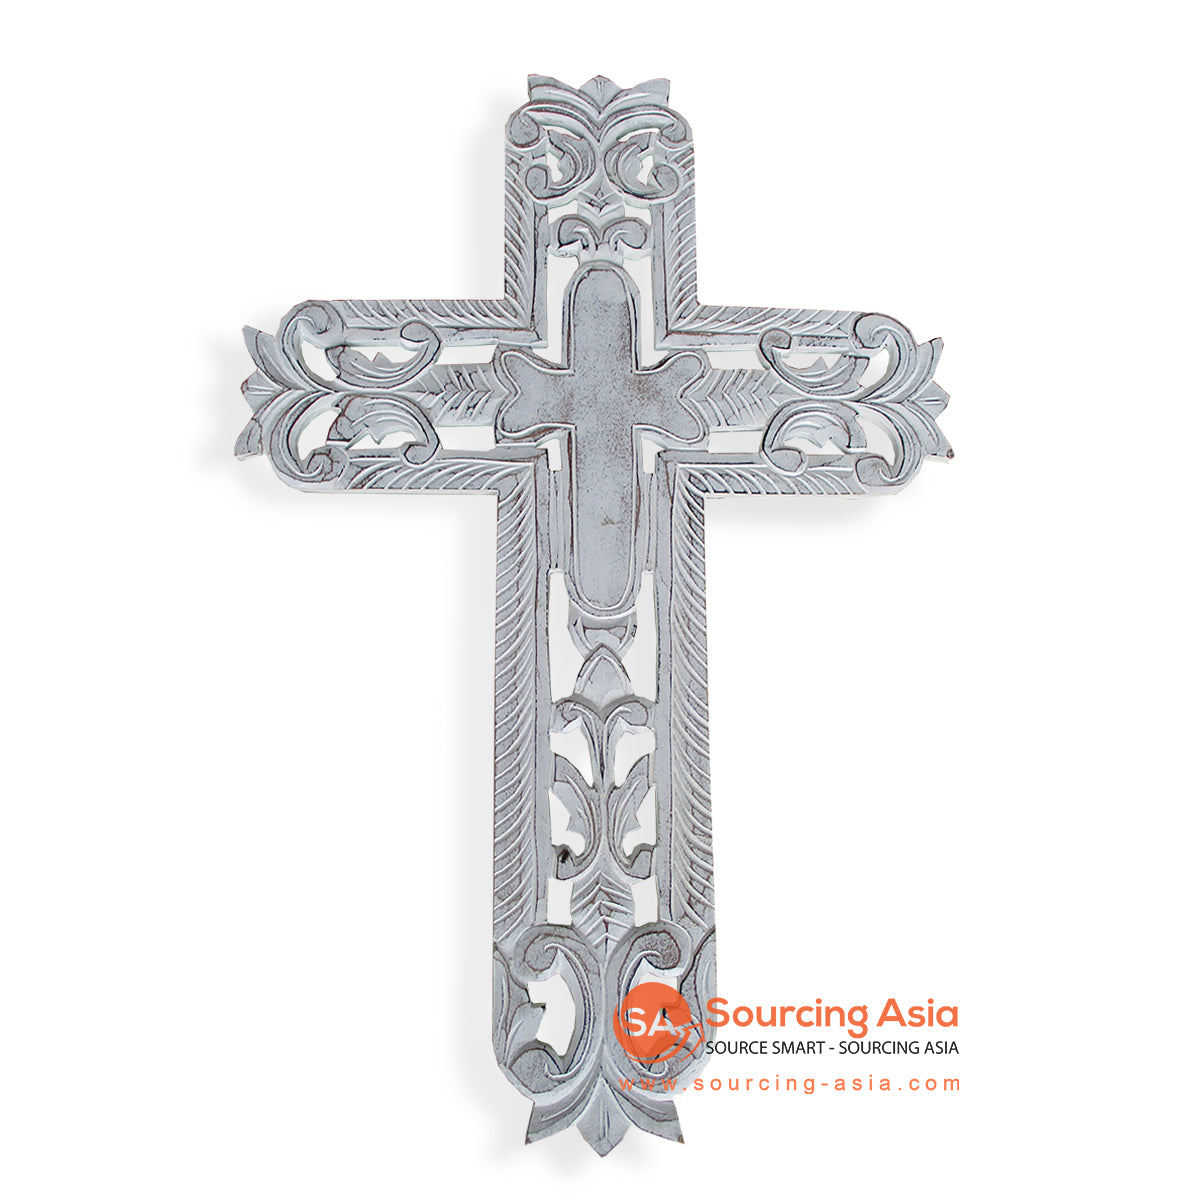 LUH045-1 WOODEN CROSS WITH CARVING